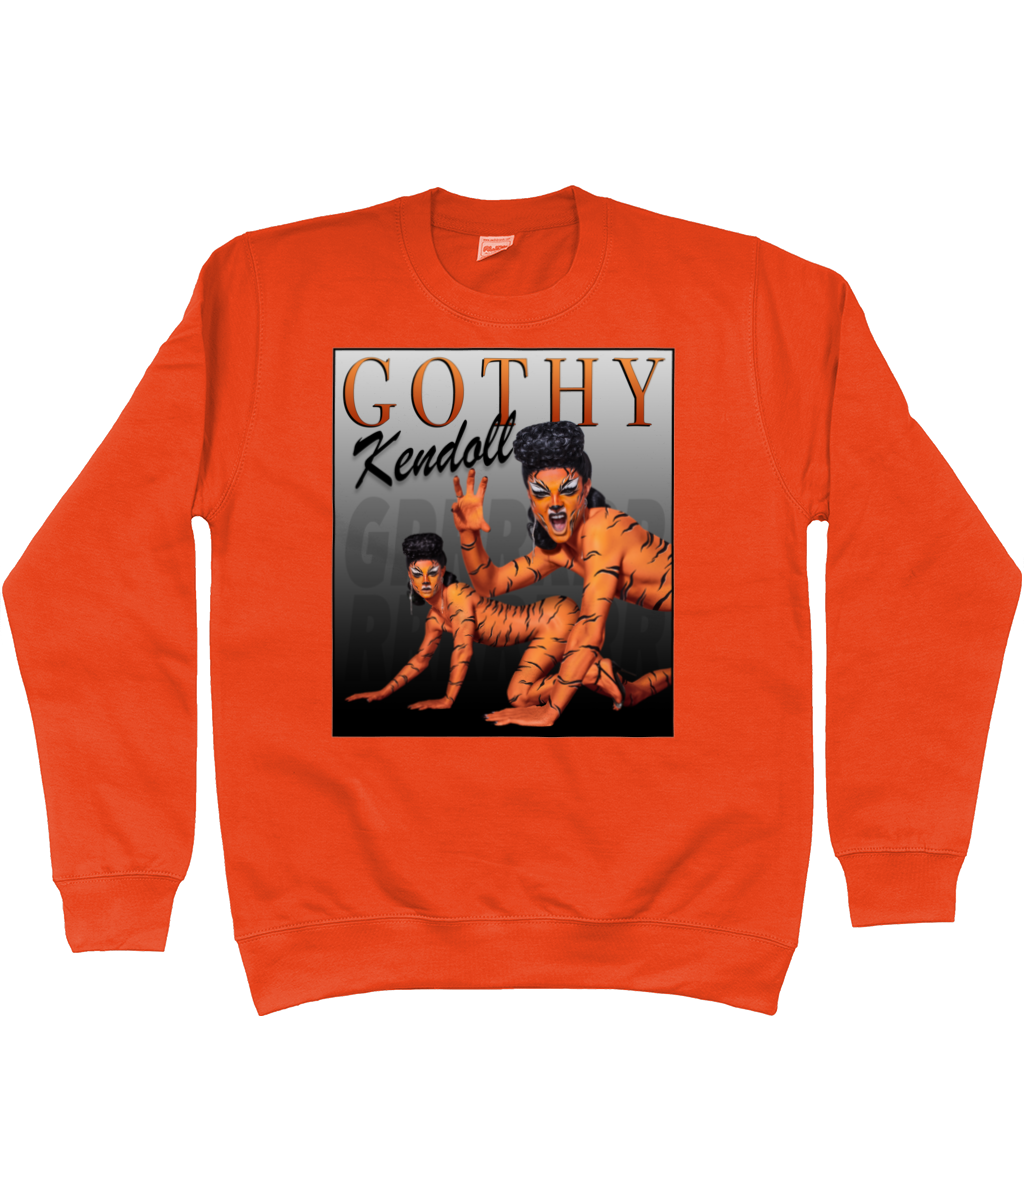 Gothy Kendoll - Regents Park Sweatshirt - Official Merch